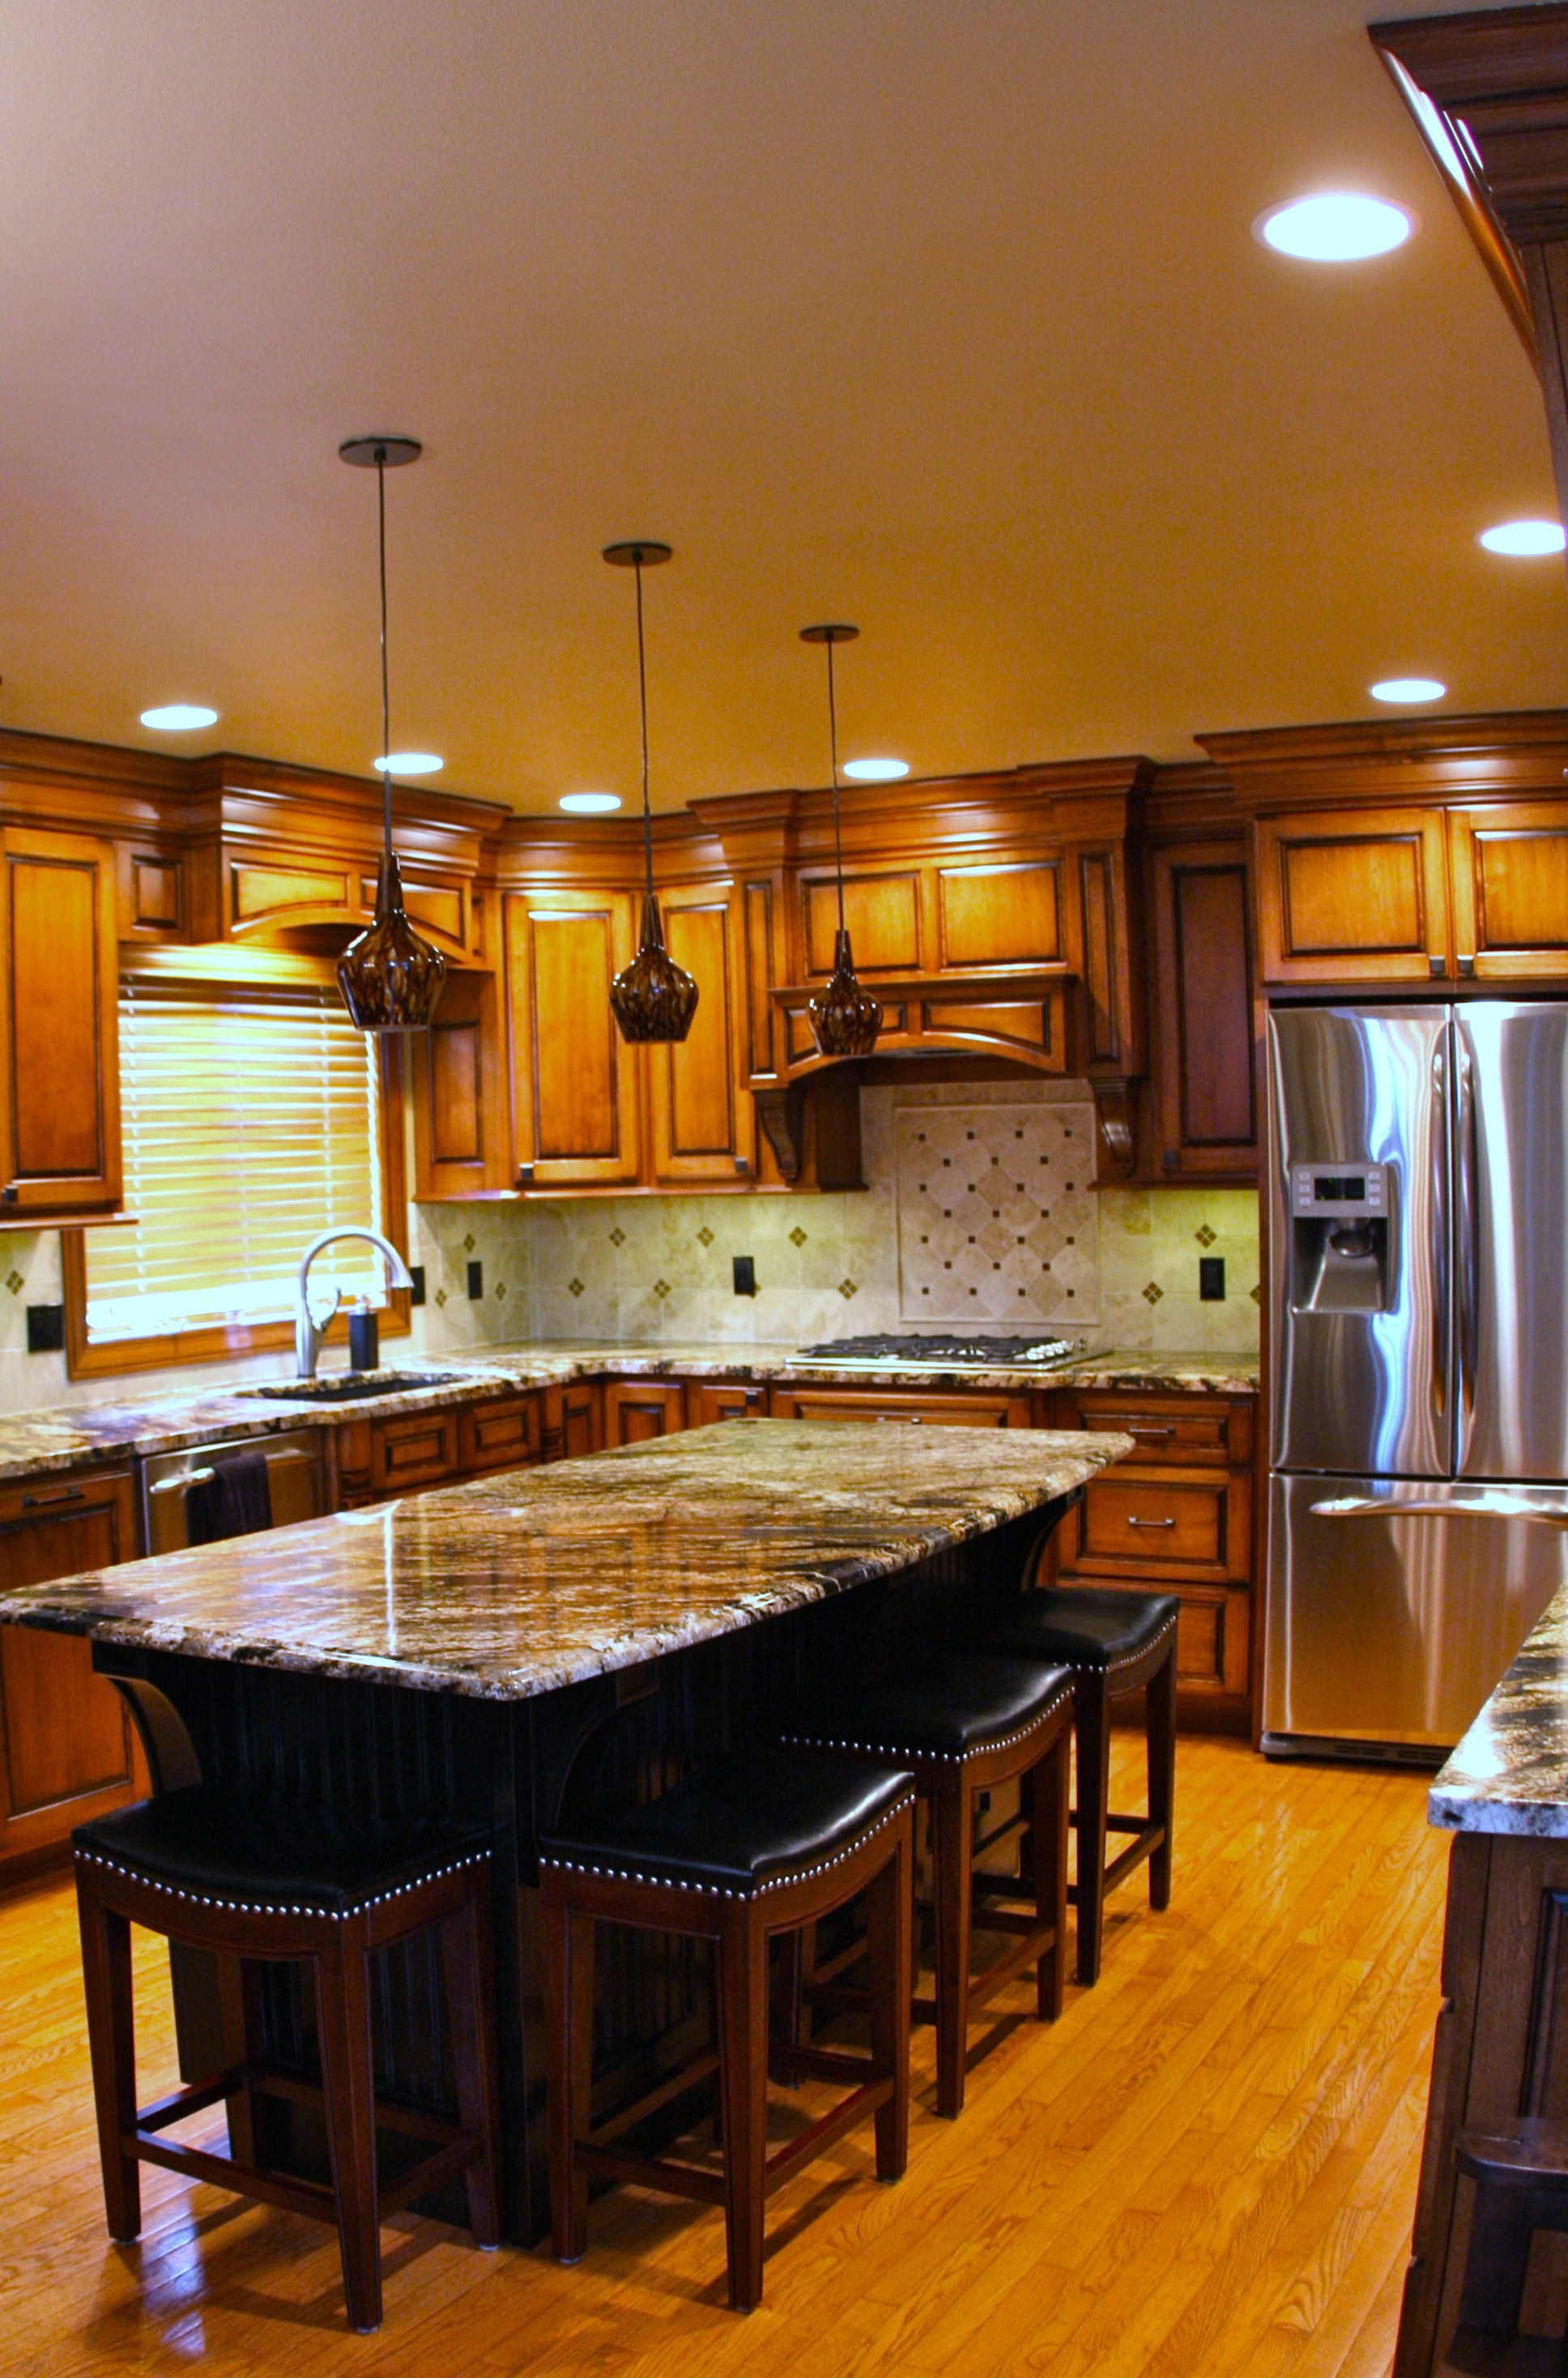 Granite countertops throughout